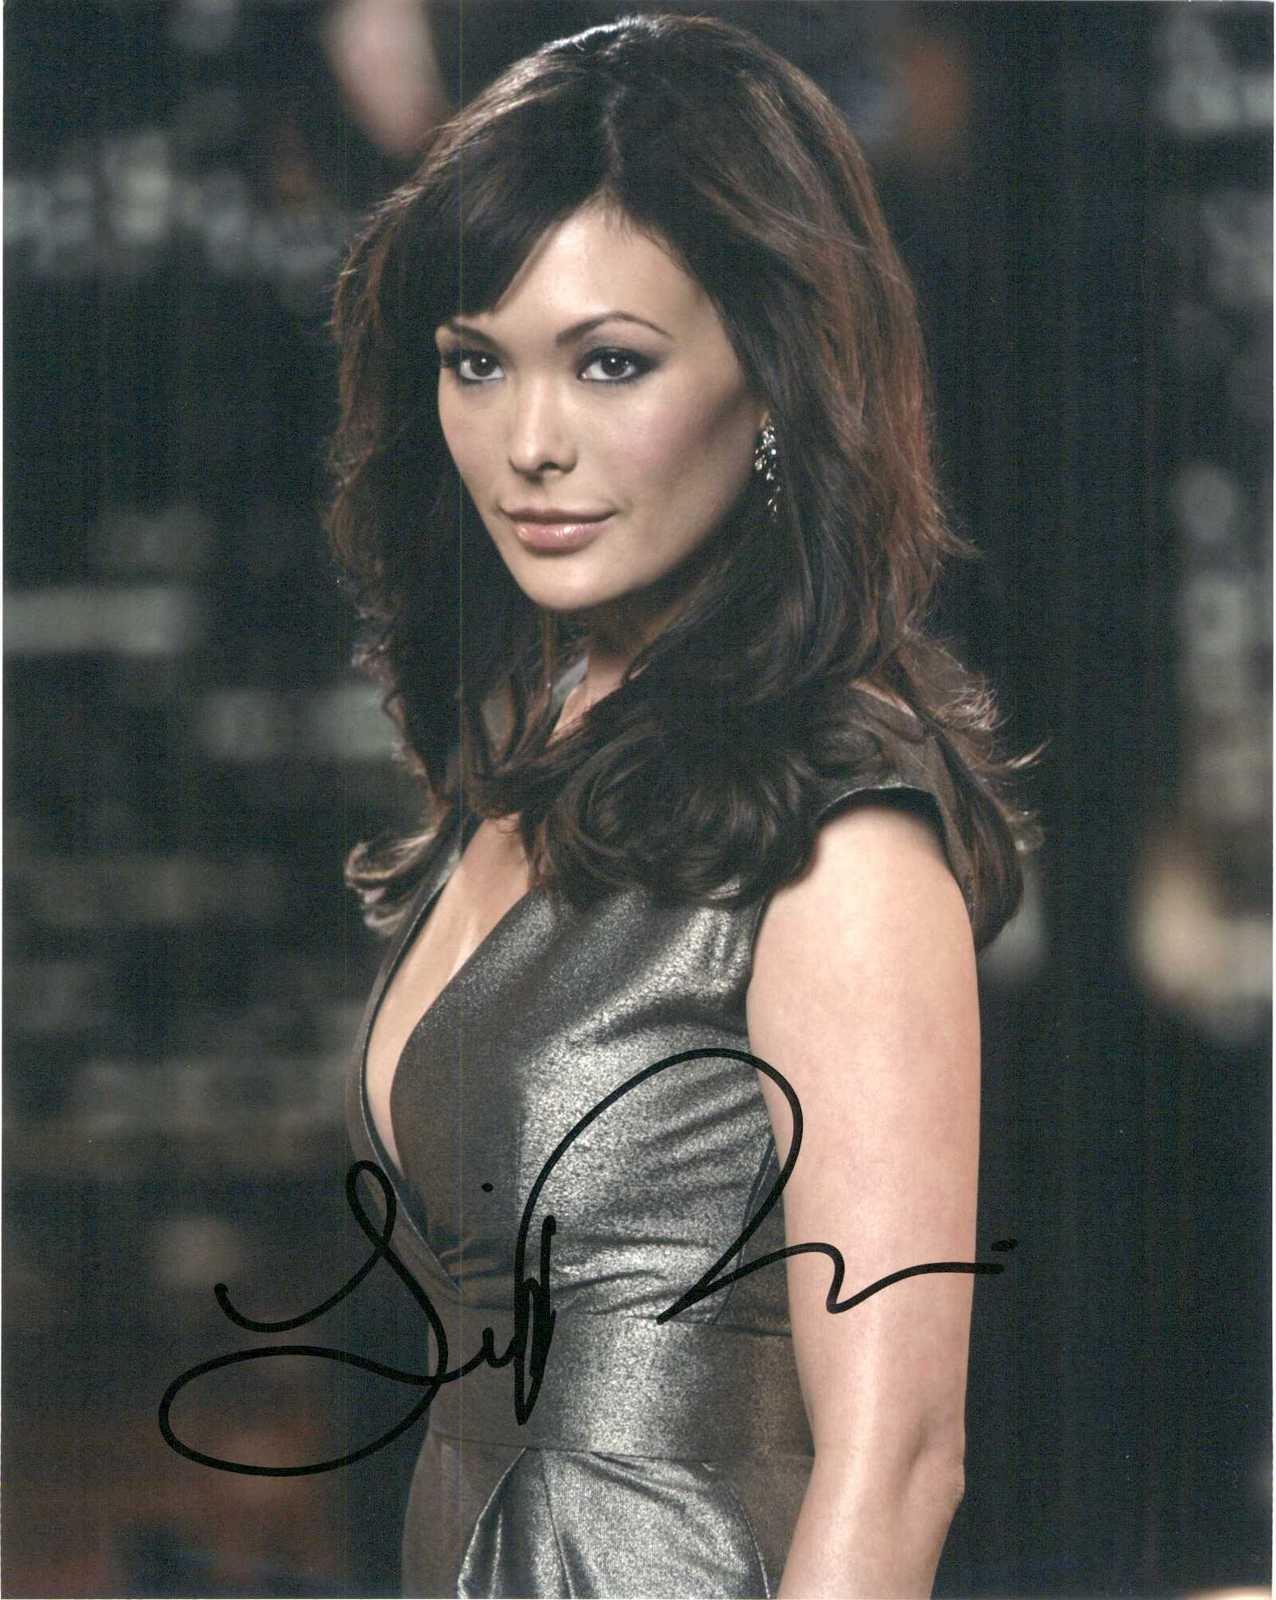 Primary image for Lindsay Price Signed Autographed Glossy 8x10 Photo